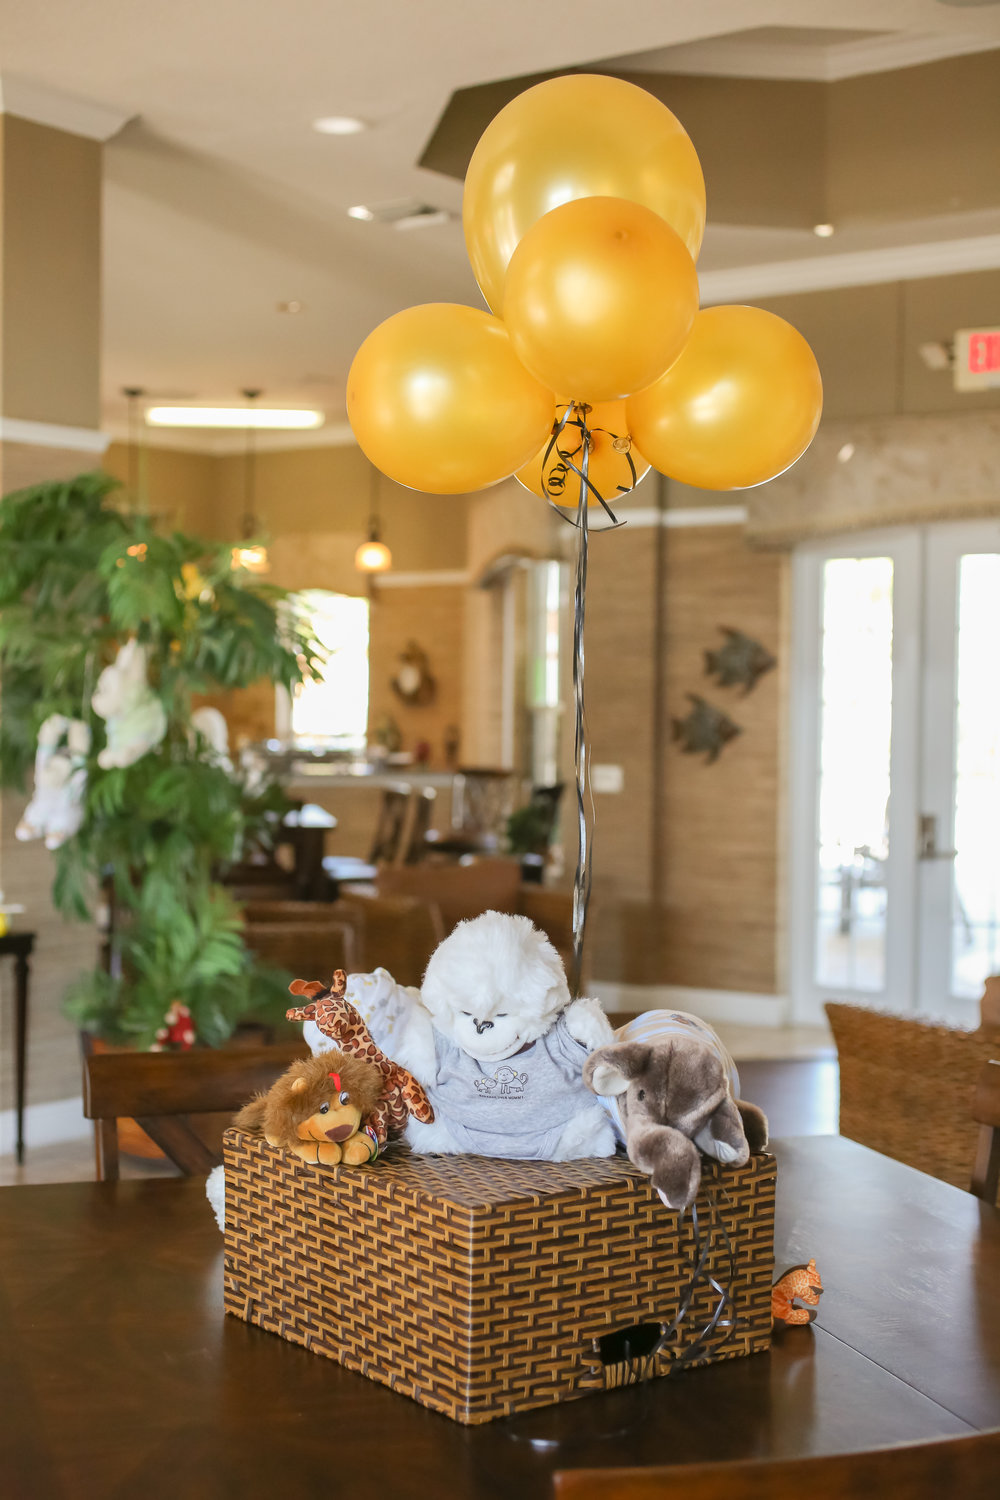 Inside, tables were decorated with assorted jungle animal toys dressed in baby clothes and holding gold balloons (all meant for baby to enjoy after the shower!)